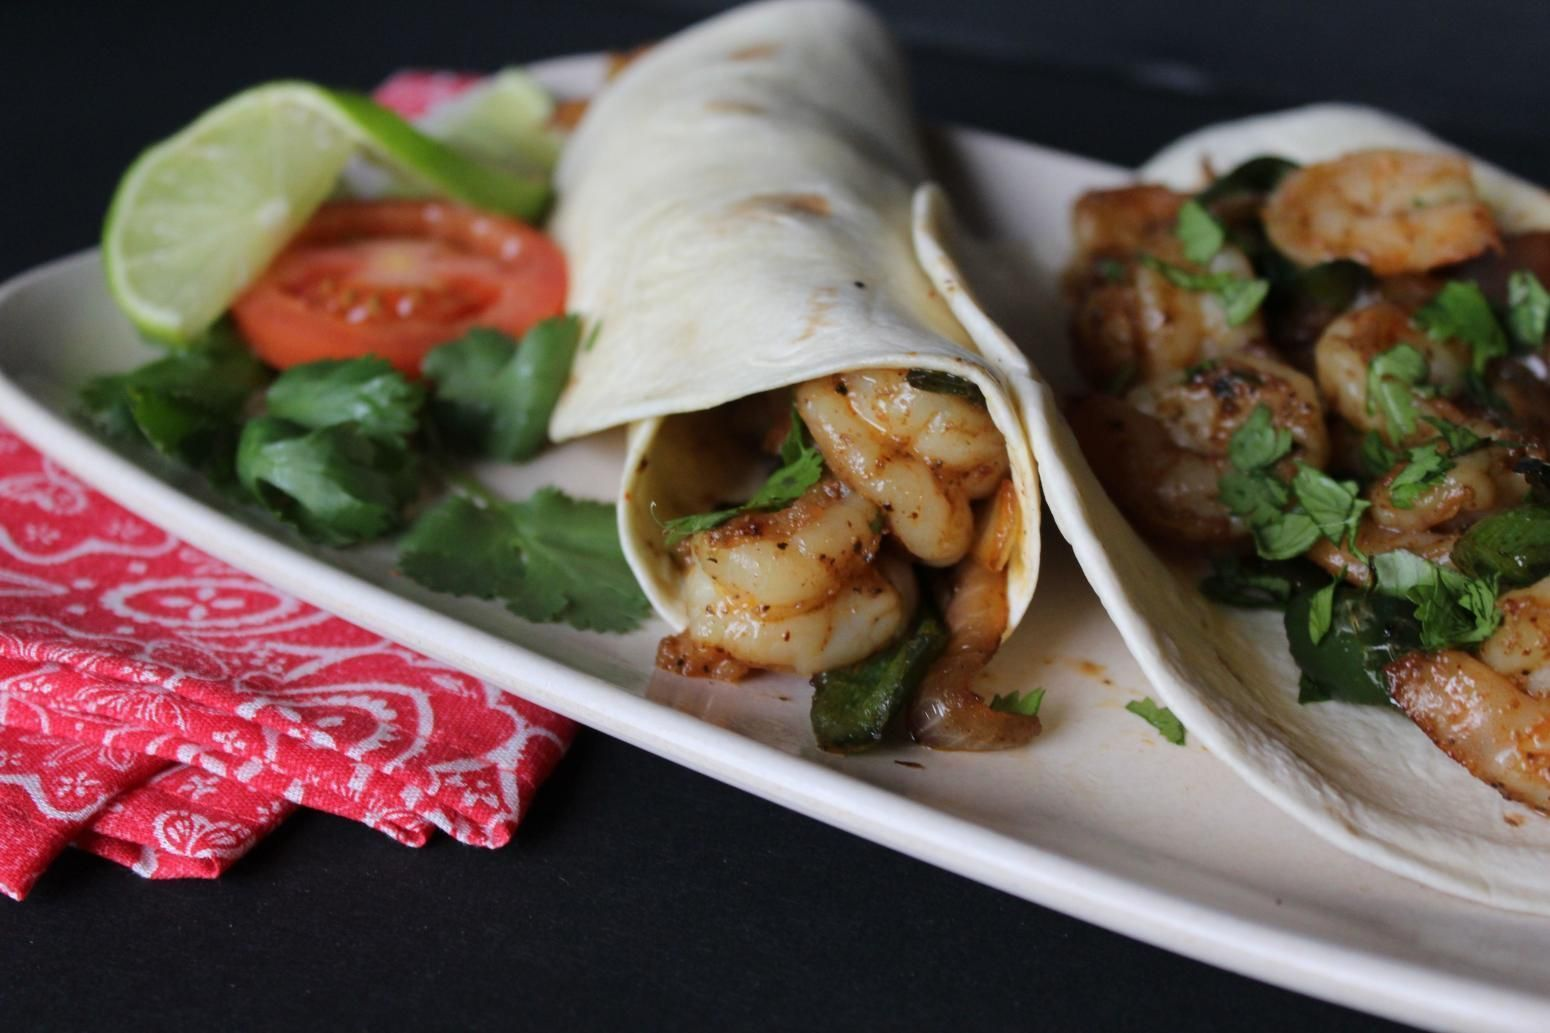 #perfection #seasoned #fajitas #shrimp #amount #people #these #right #were #just #two #and #the #for #toShrimp Fajitas for Two Shrimp Fajitas for Two   These shrimp fajitas were seasoned to perfection and just the right amount for two people.Shrimp Fajitas for Two   These shrimp fajitas were seasoned to perfection and just the right amount for two people. #shrimpfajitas #perfection #seasoned #fajitas #shrimp #amount #people #these #right #were #just #two #and #the #for #toShrimp Fajitas for Two #shrimpfajitas